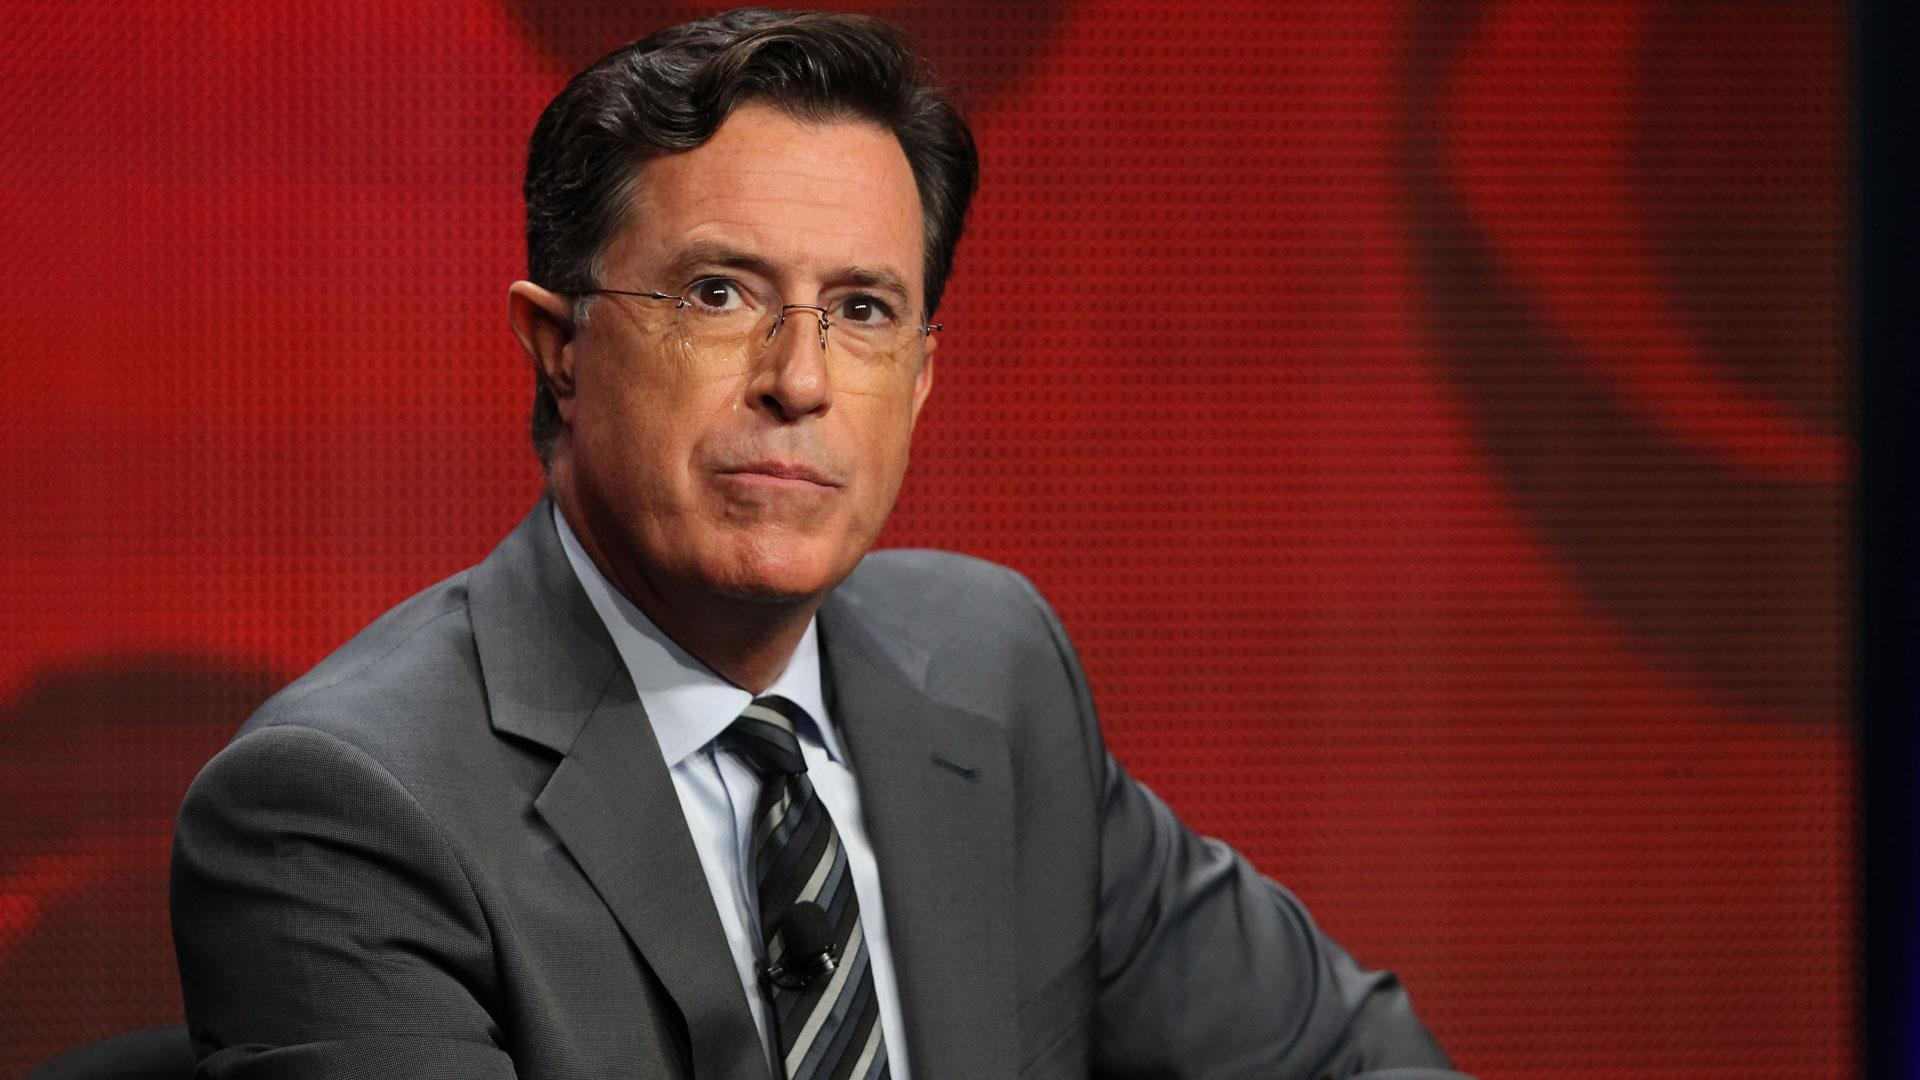 Stephen Colbert's Week 2 Guests Include Bernie Sanders, Lupita Nyong'o